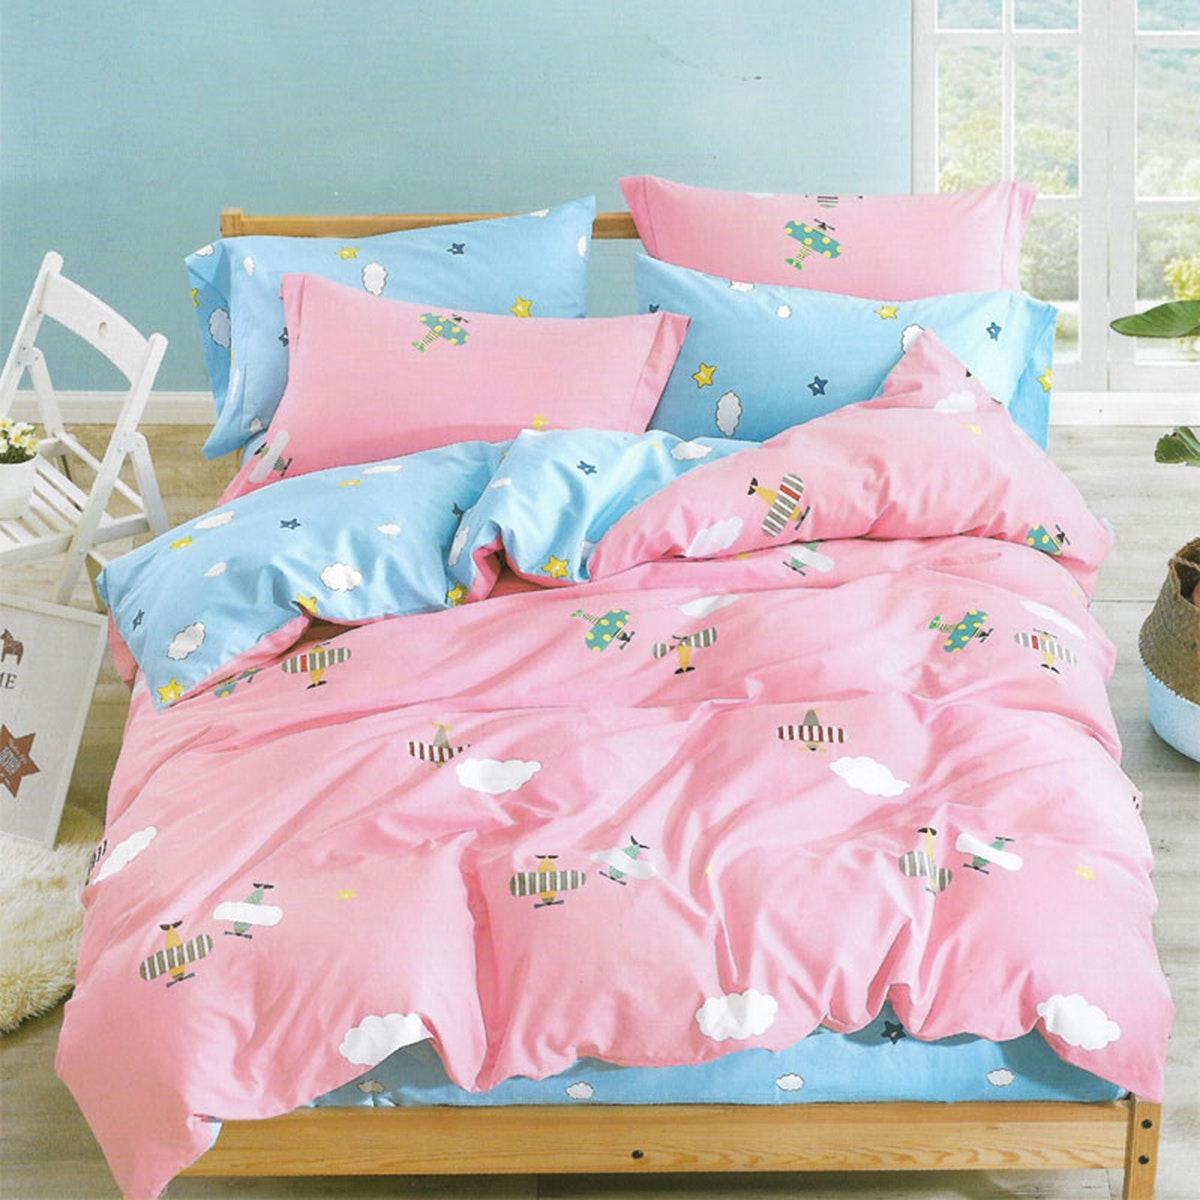 Sleep Buddy Set Sprei dan Bed Cover Airplane Cotton Sateen 120x200x30